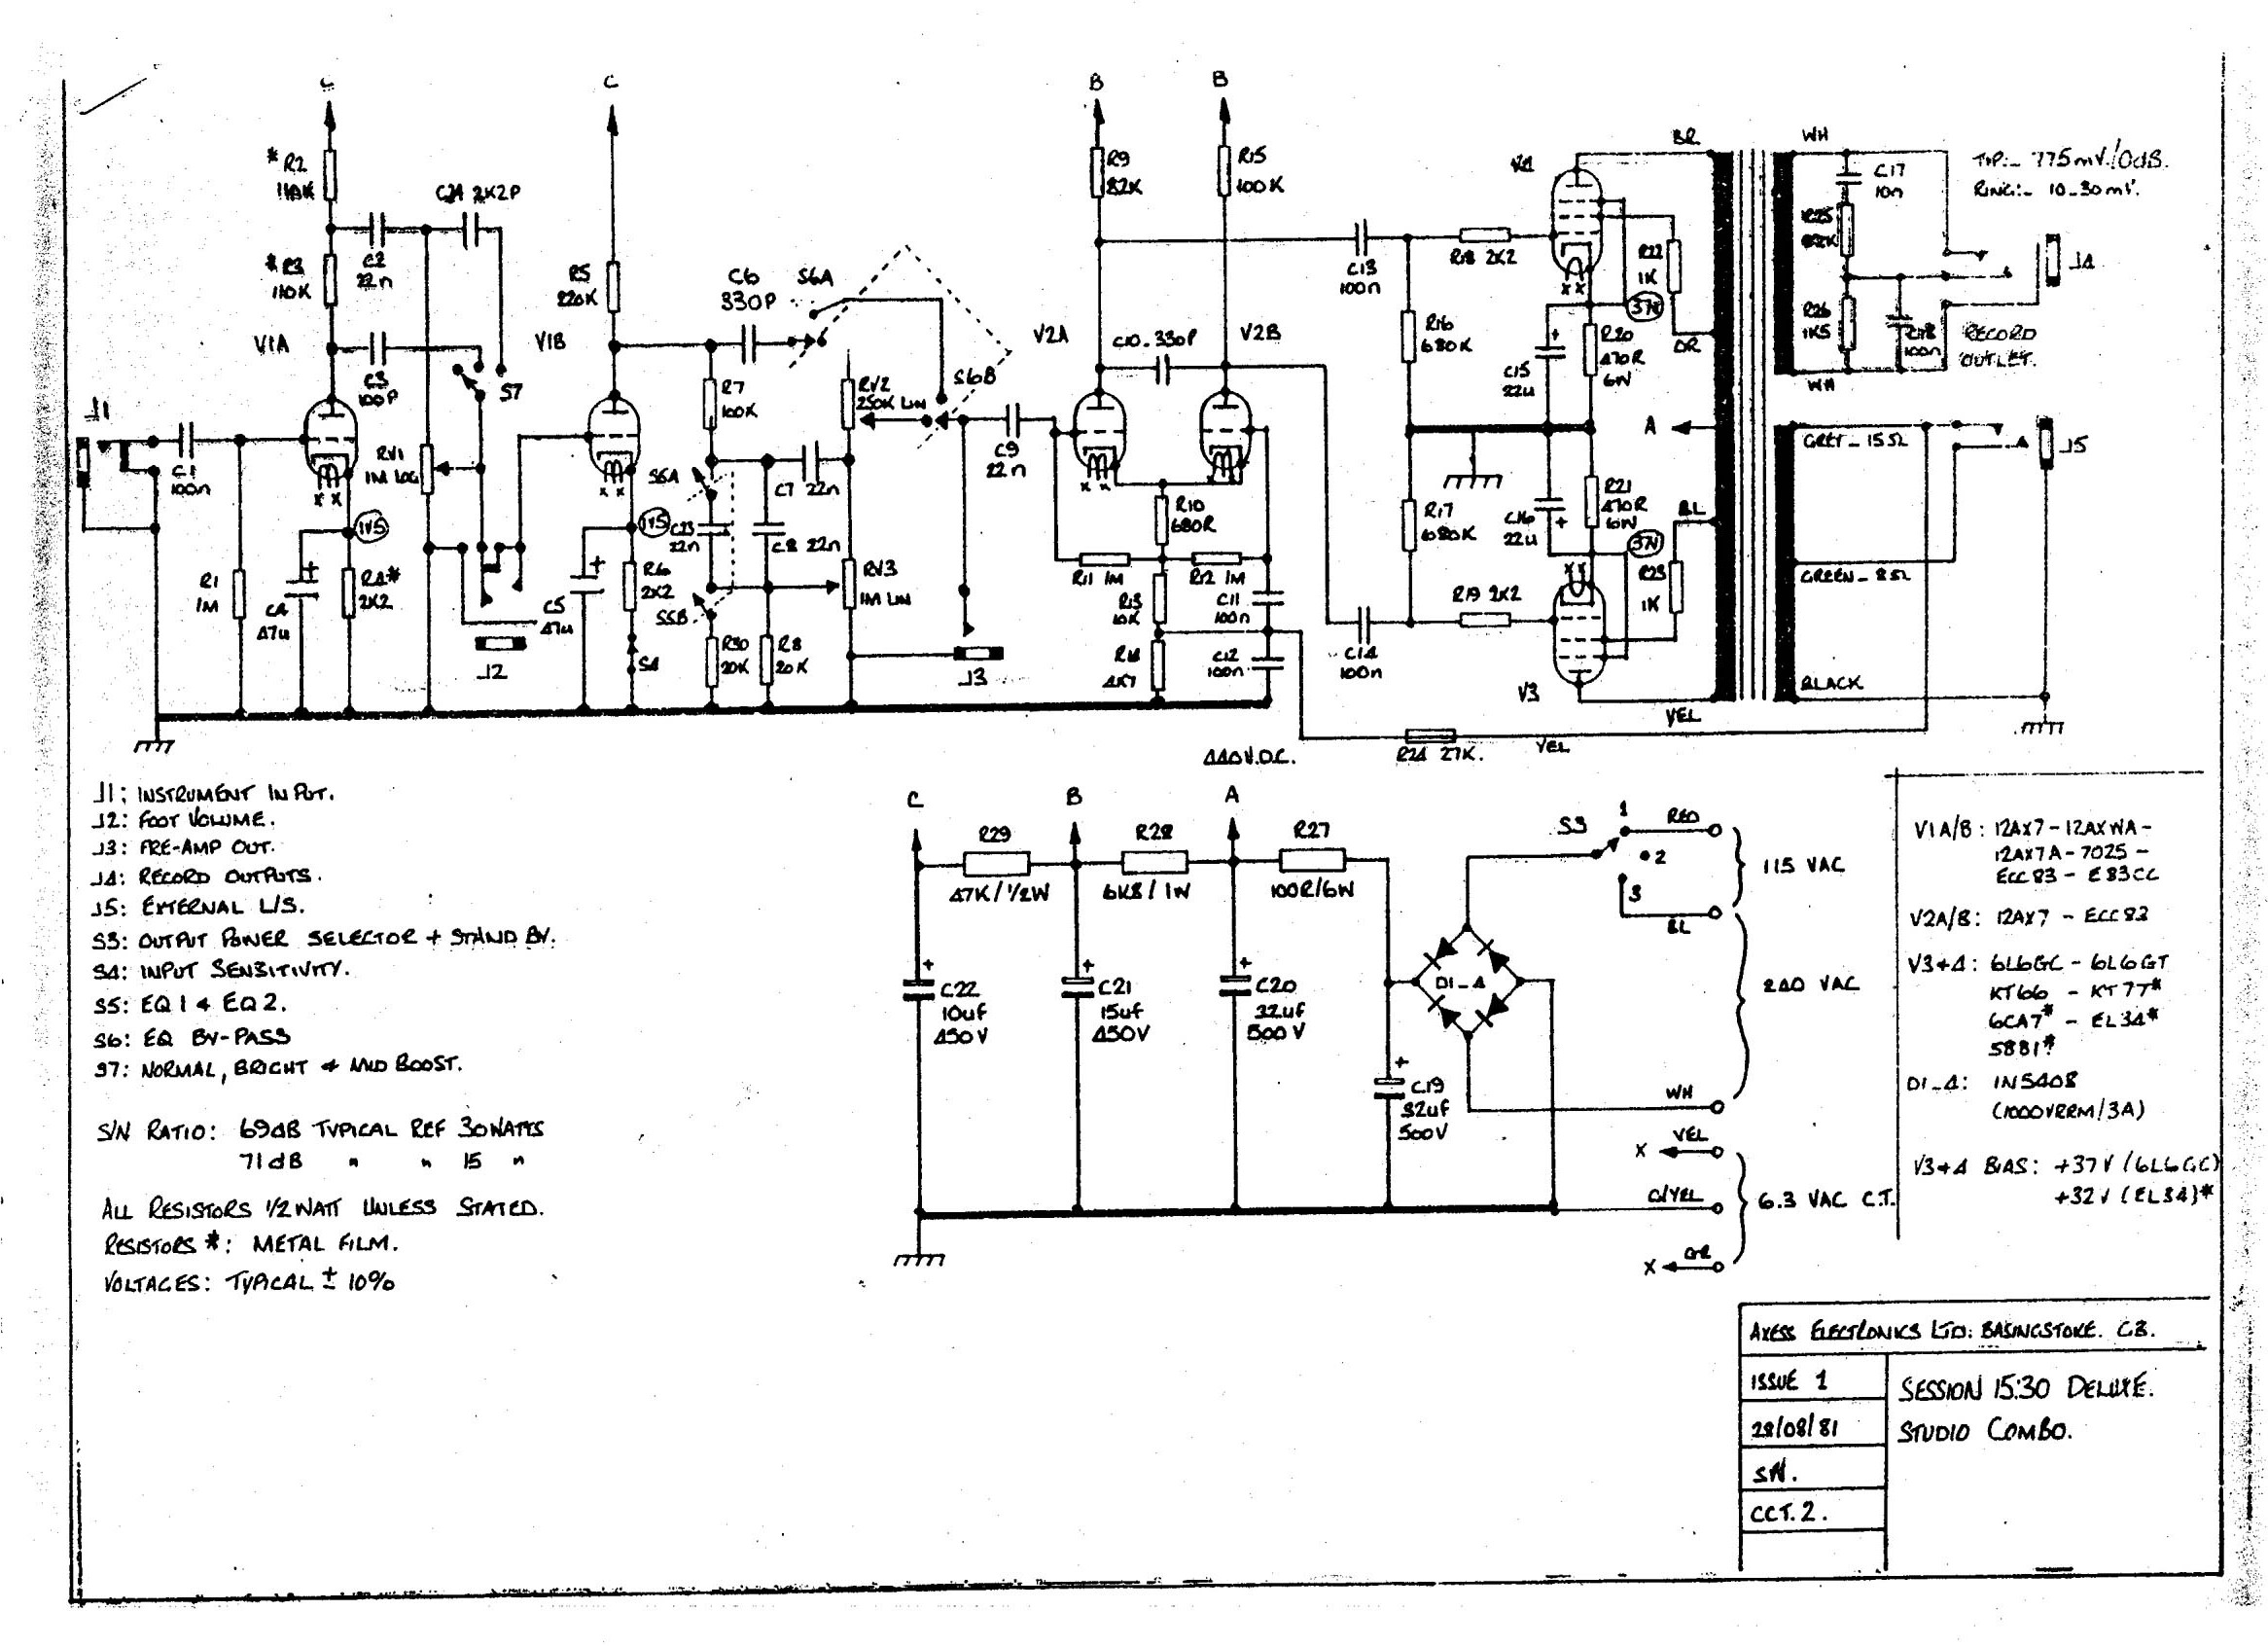 ... Session 15:30 Valve 'Studio Combo' Schematic (1979-1983)